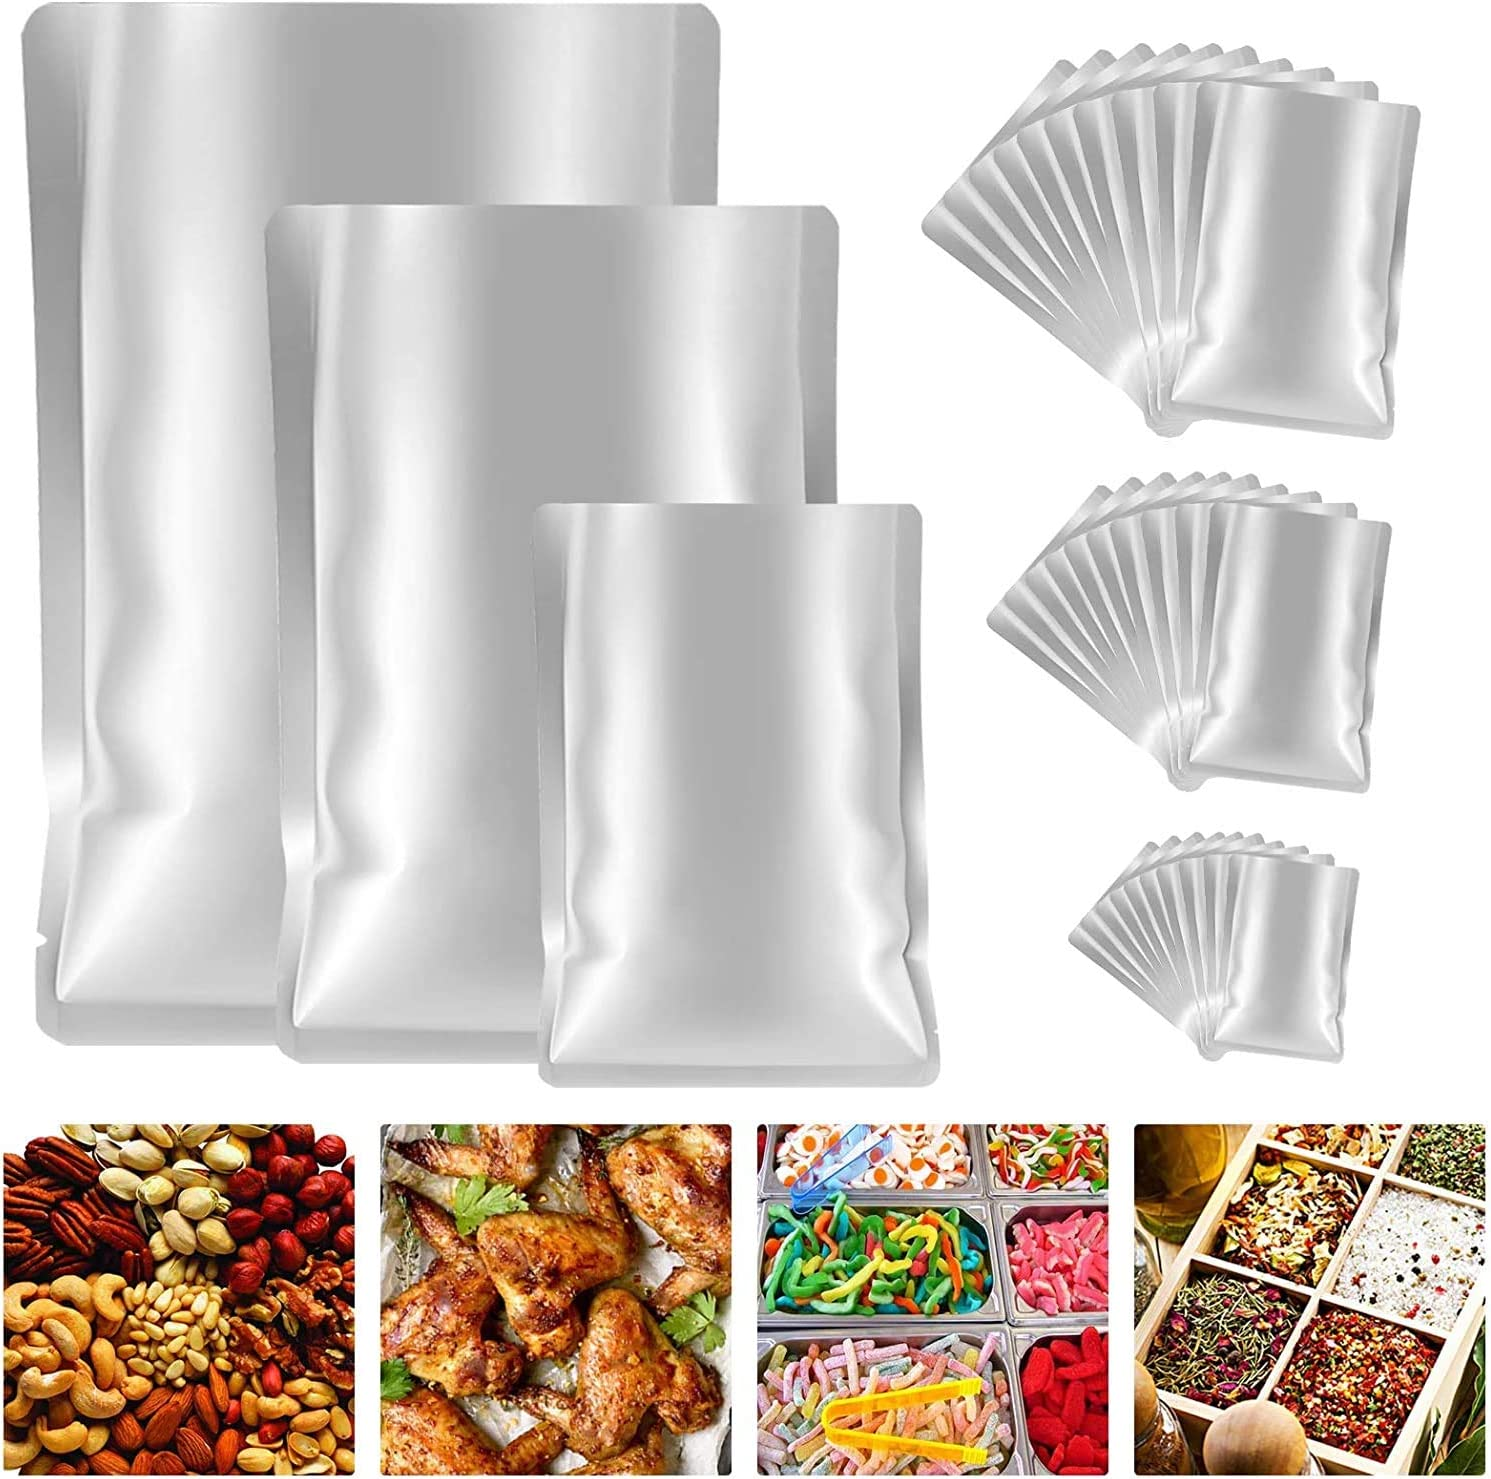 25 Pieces 3 Sizes Mylar Aluminum Foil Bags, Mylar Vacuum Seal Bags for Food Storage, Grain, Dried Flowers, Tea, Coffee Beans Storage Container (11''x8'', 9''x6'', 7''x5'')